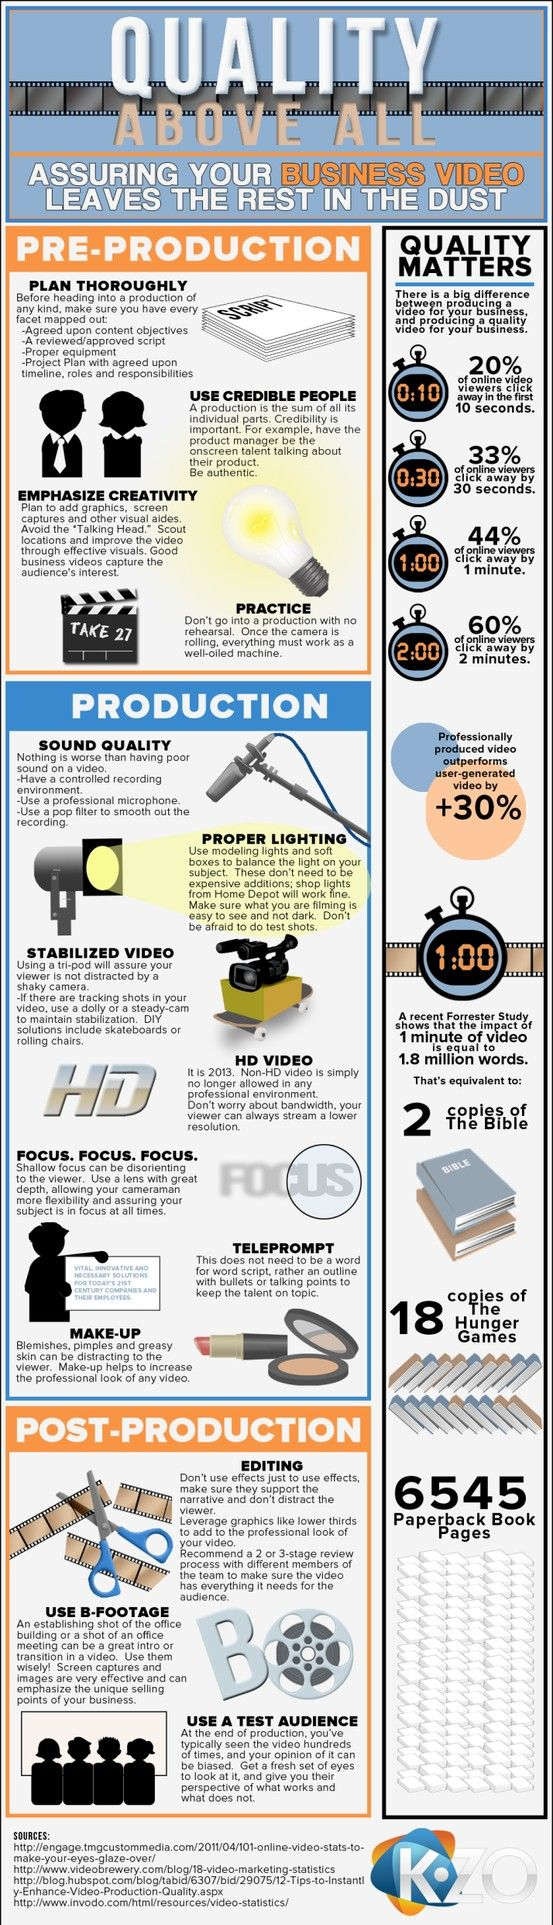 Assuring your business video leaves the rest in the dust #infografia #infographic #marketing